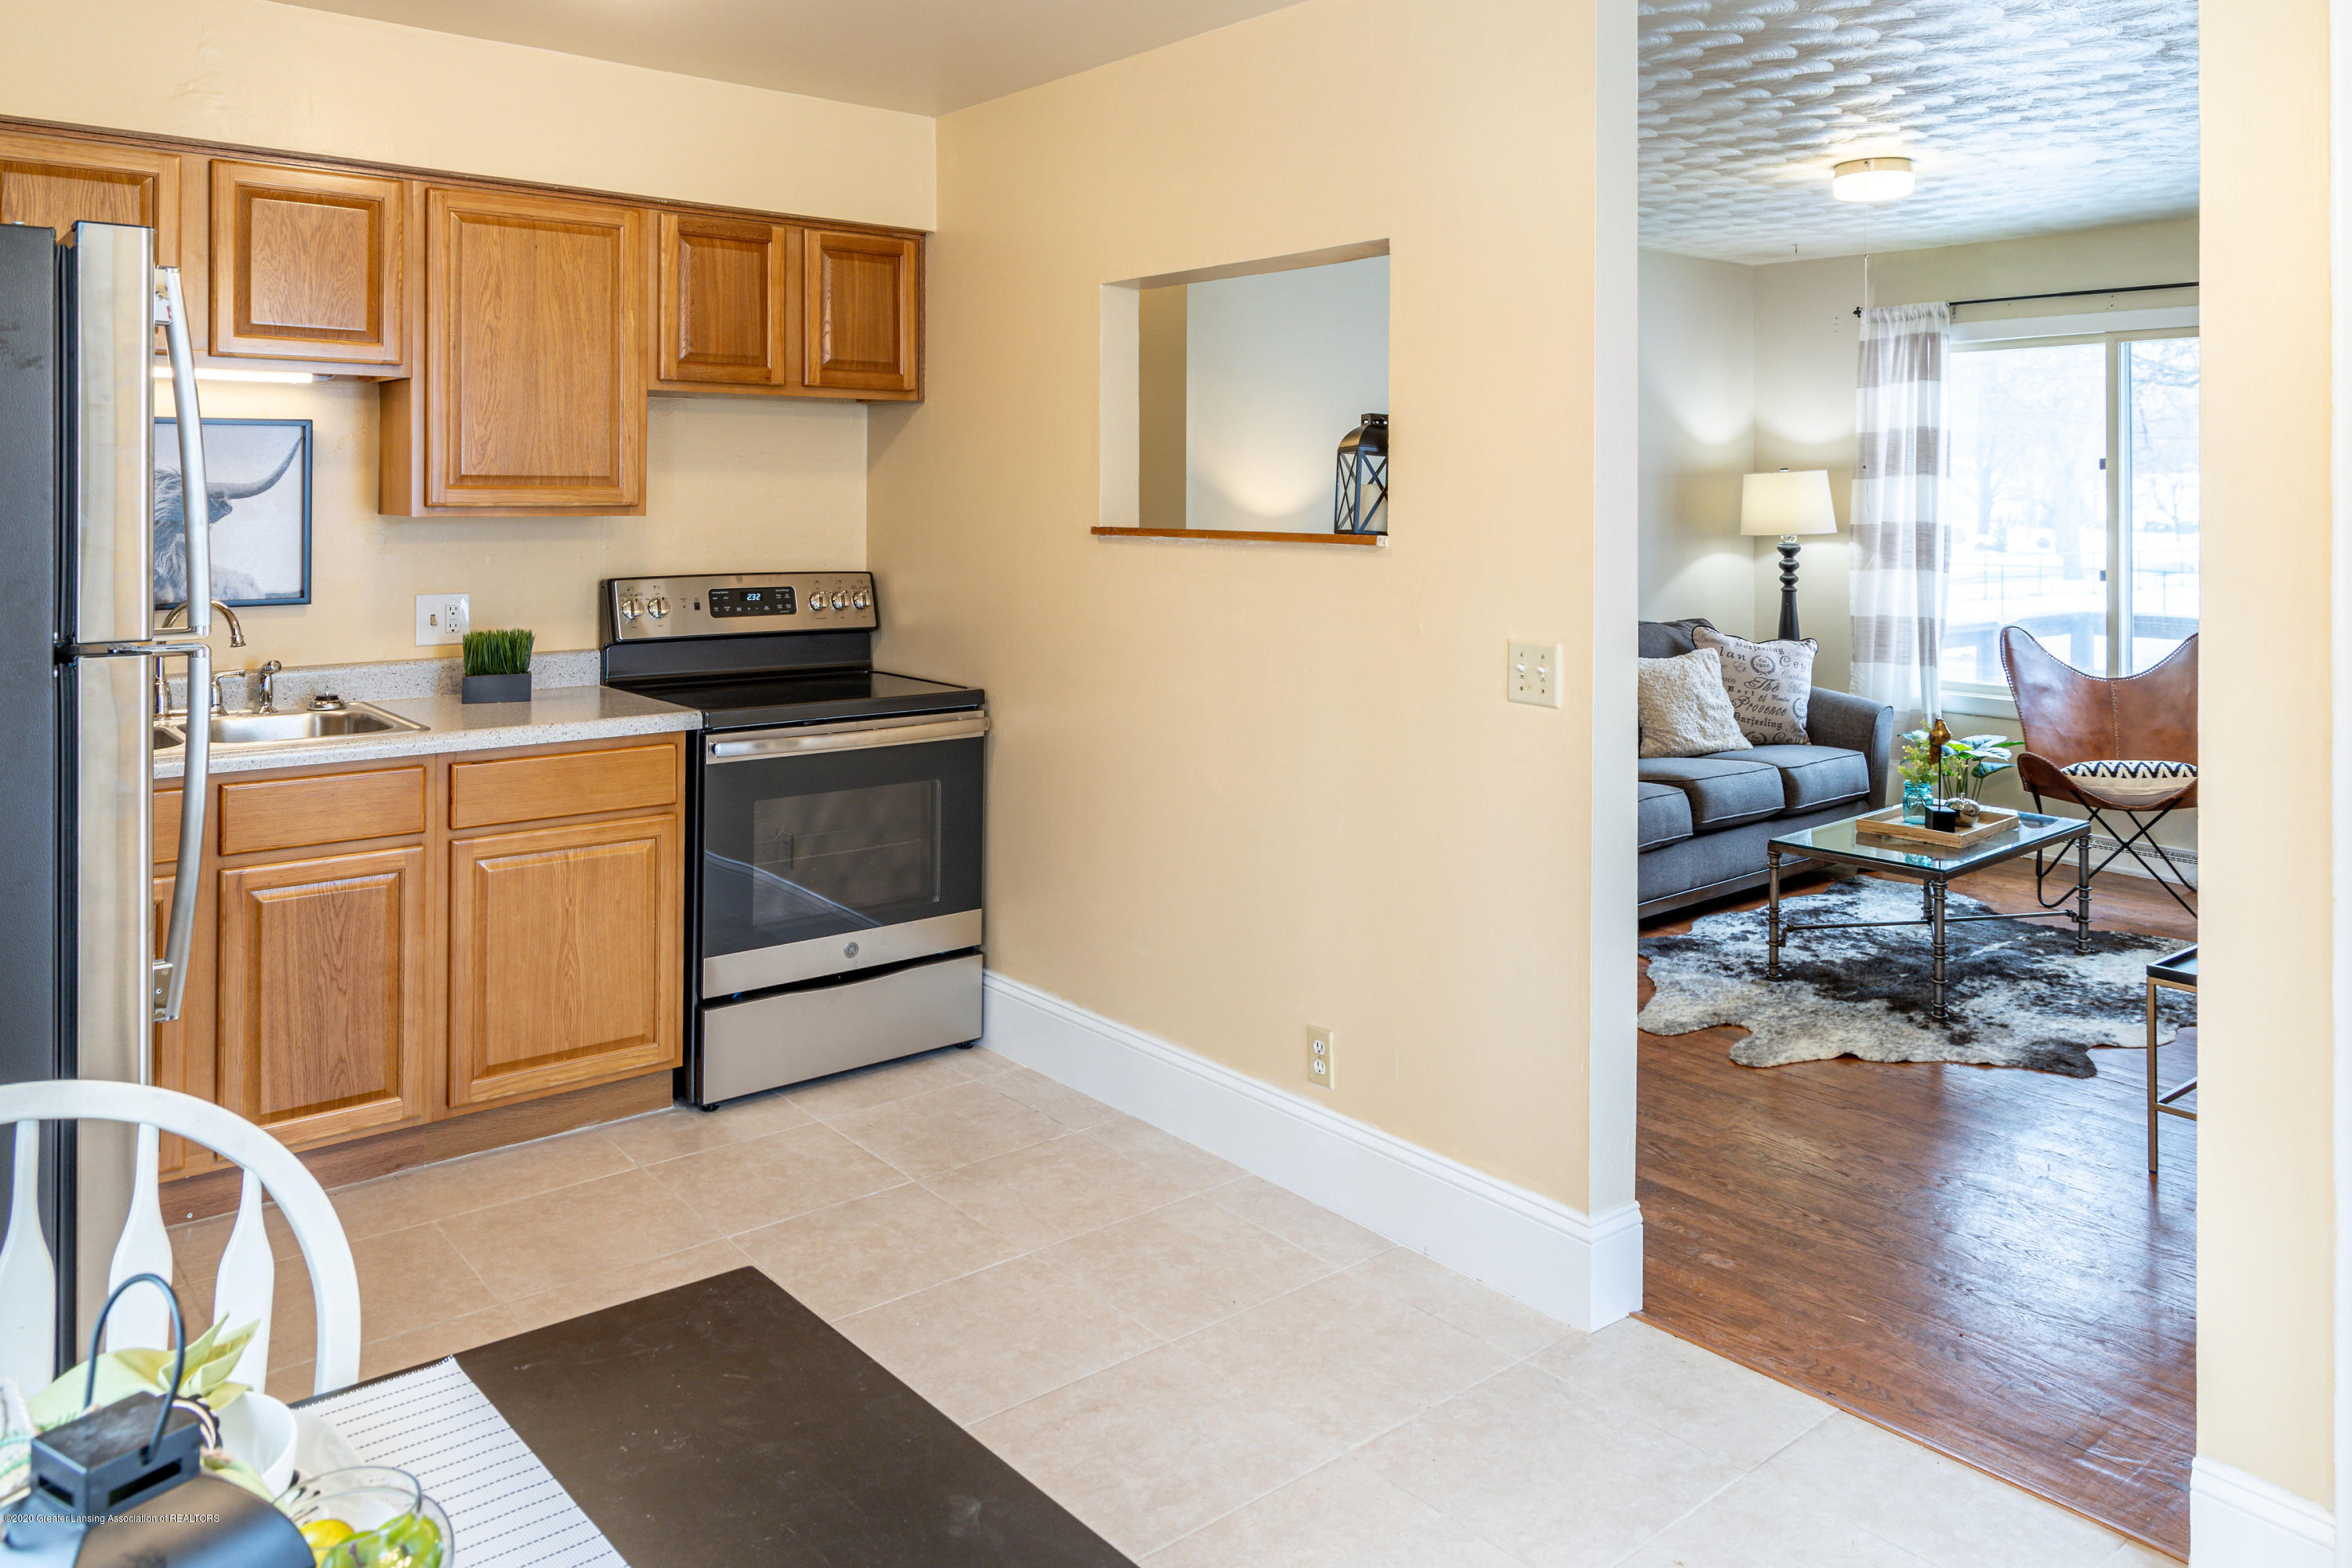 3513 S Deerfield Ave - kitchento living room - 5